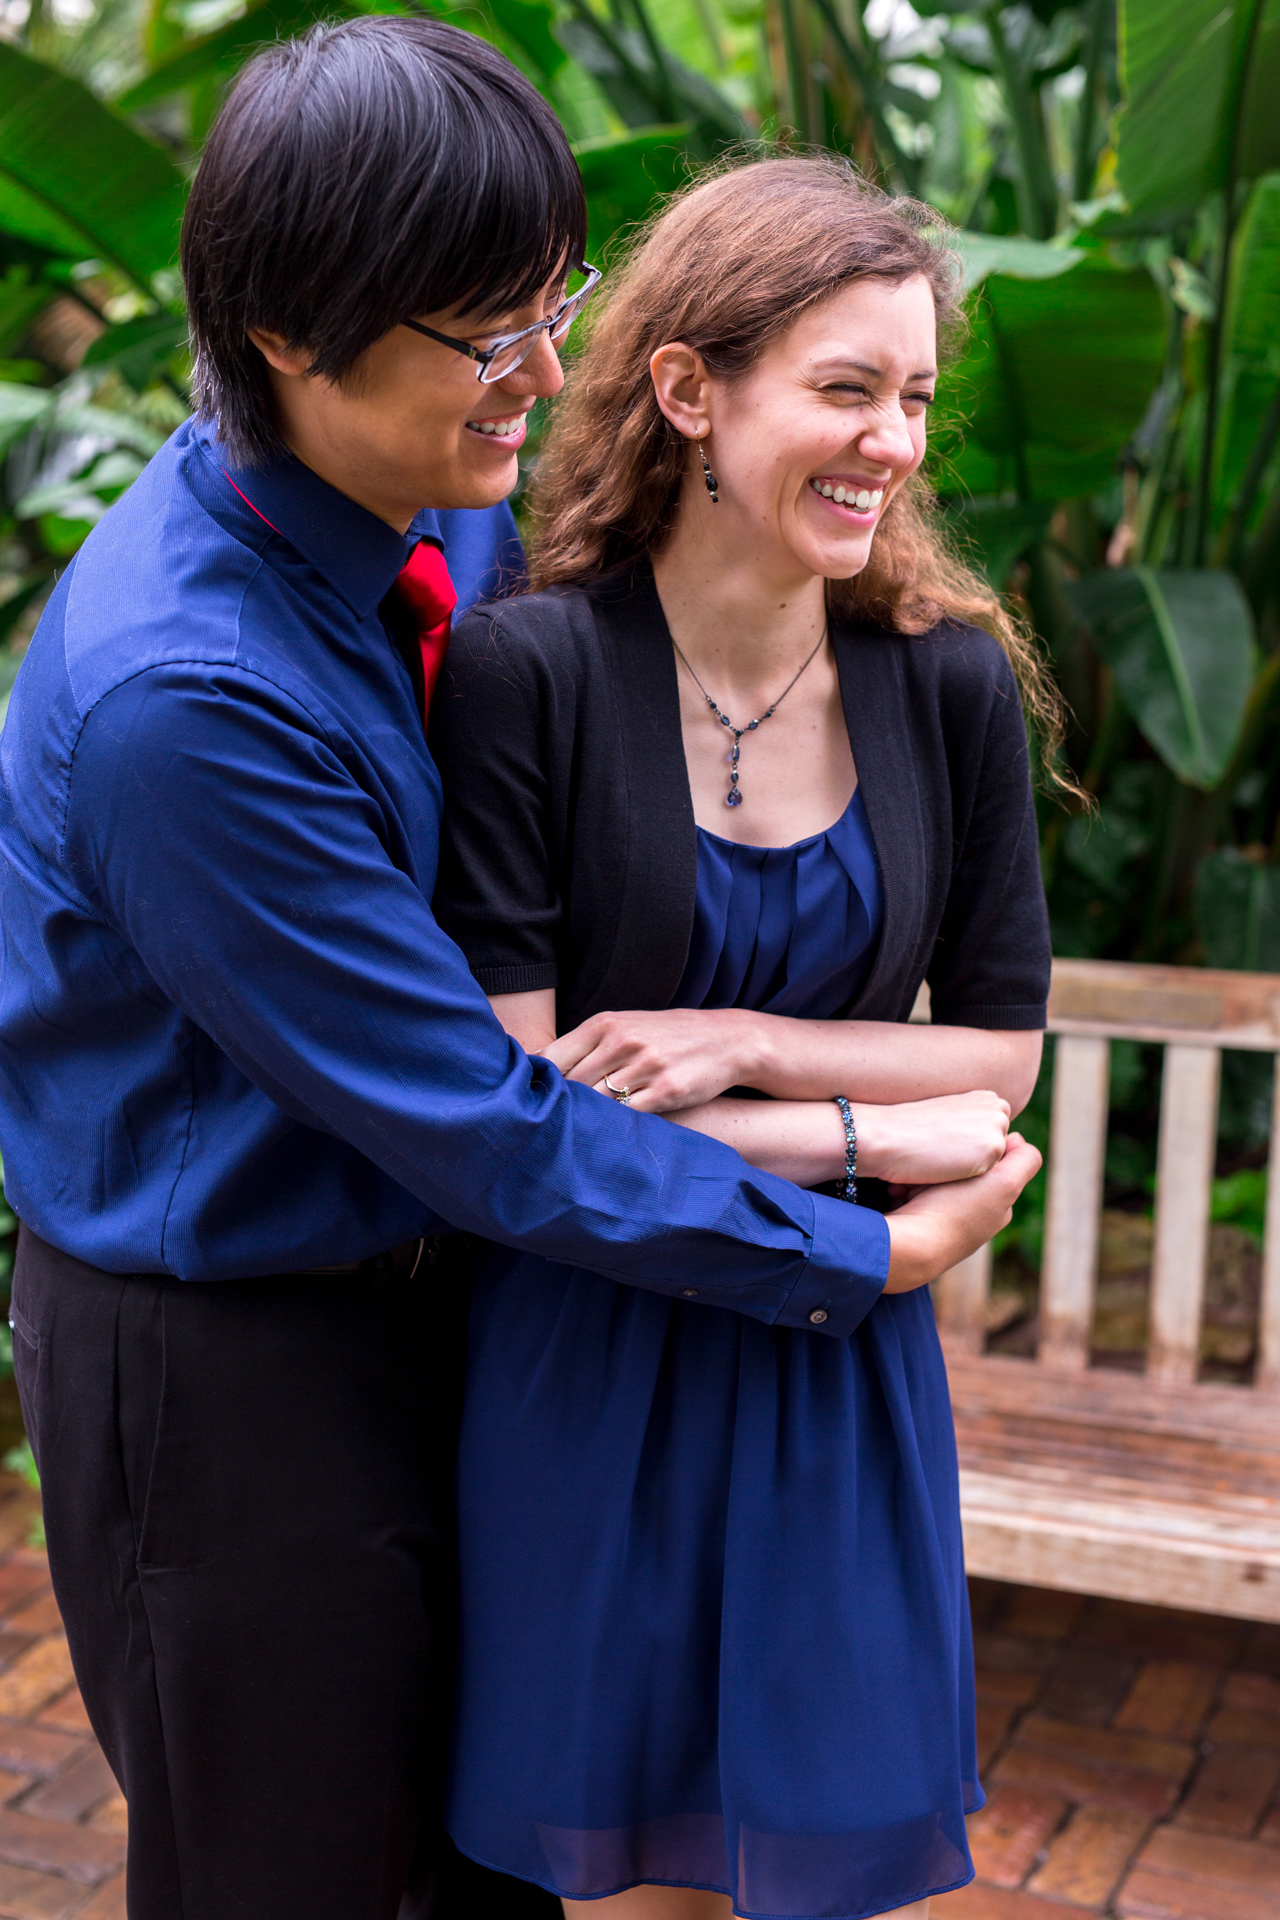 luthy botanical gardens greenhouse engagement biracial couple peoria centrail illinois wedding photographer photographers bloomington normal illinois valley lasalle peru ottawa-23.jpg